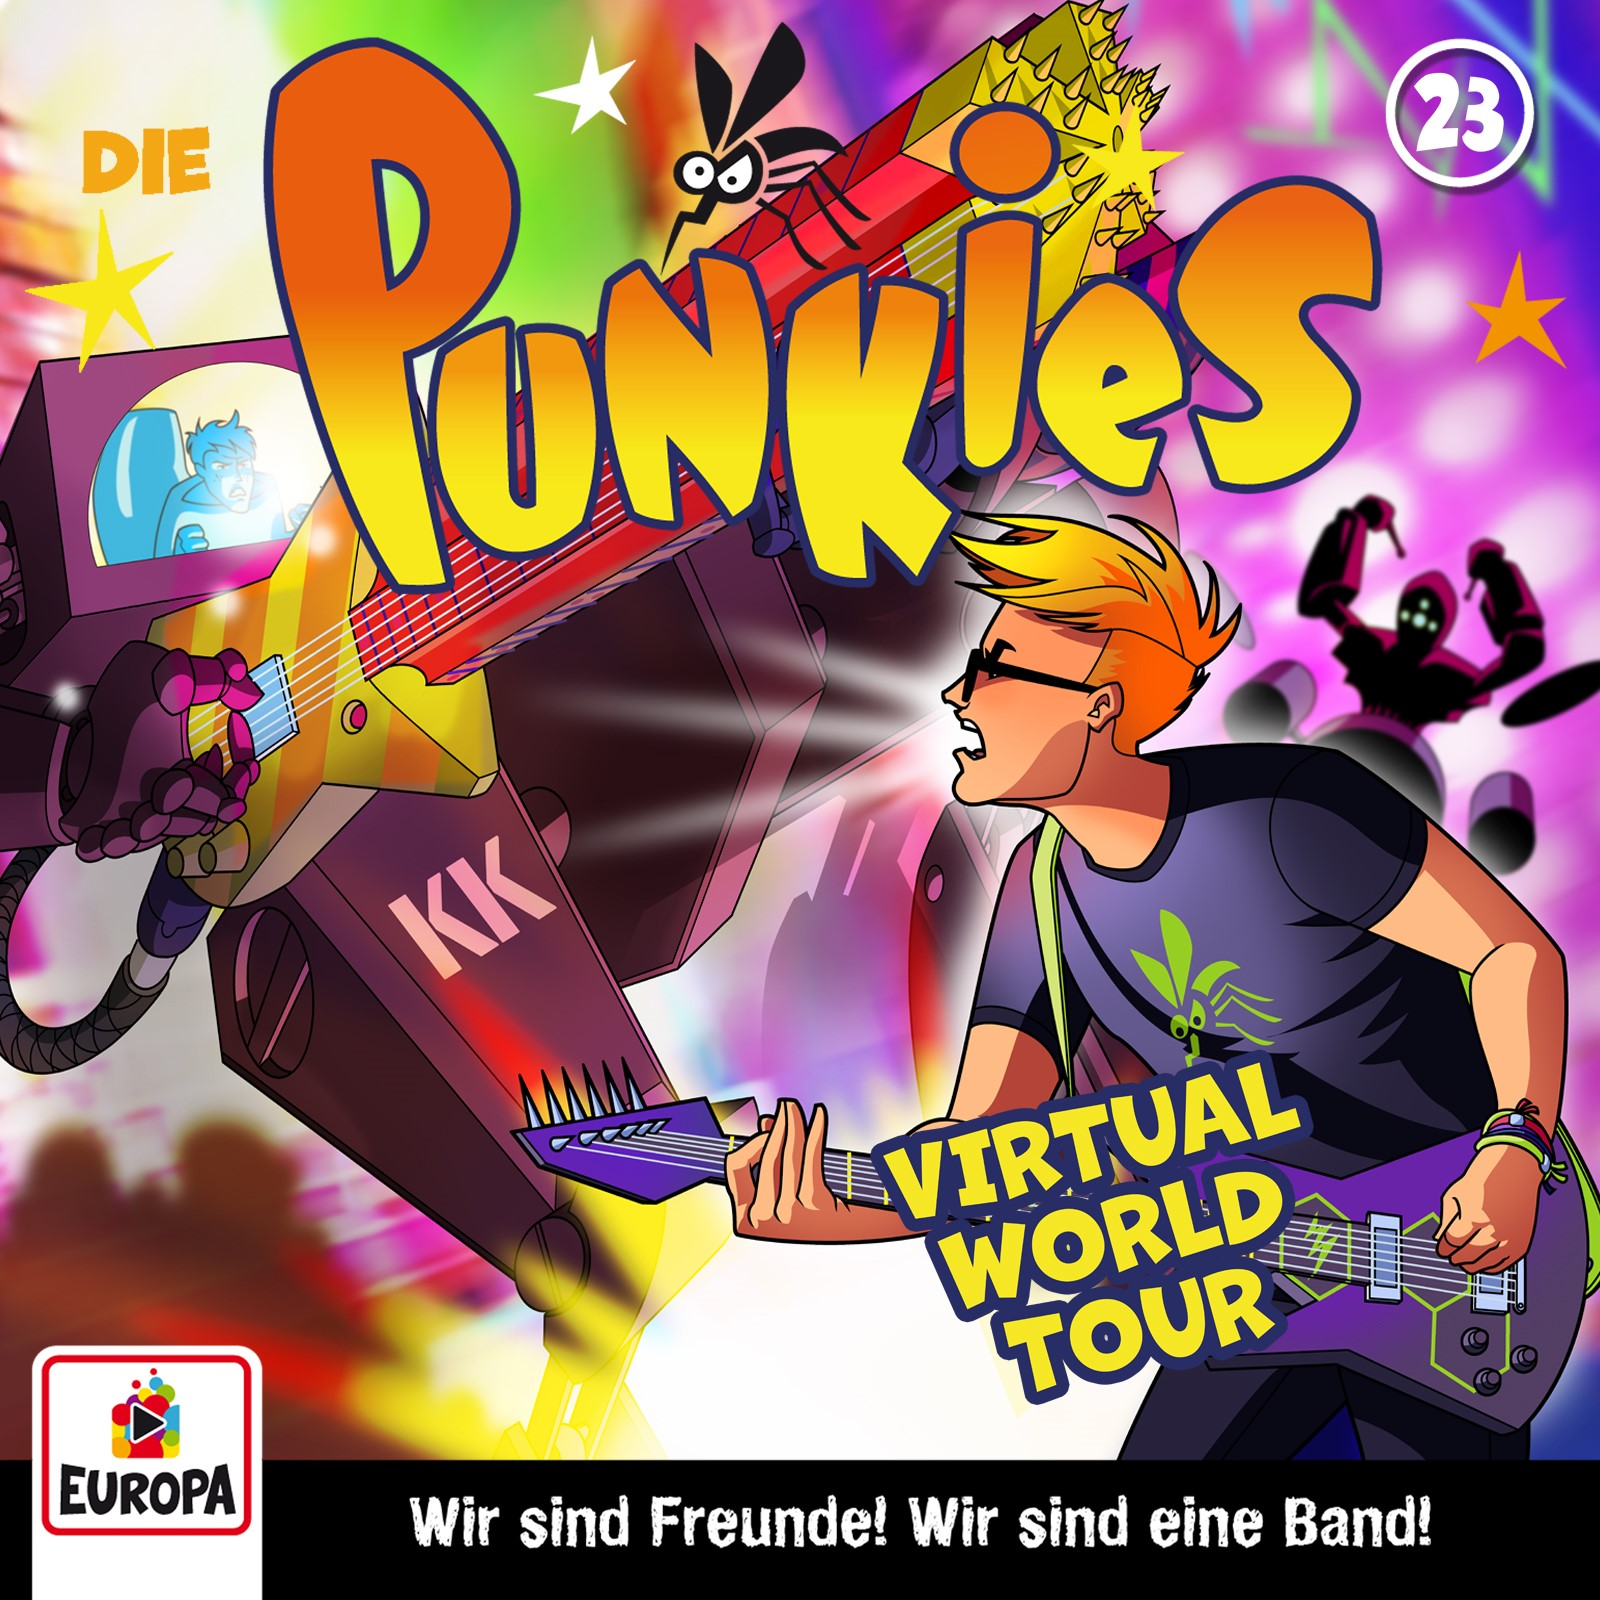 Die Punkies : Virtual World Tour!